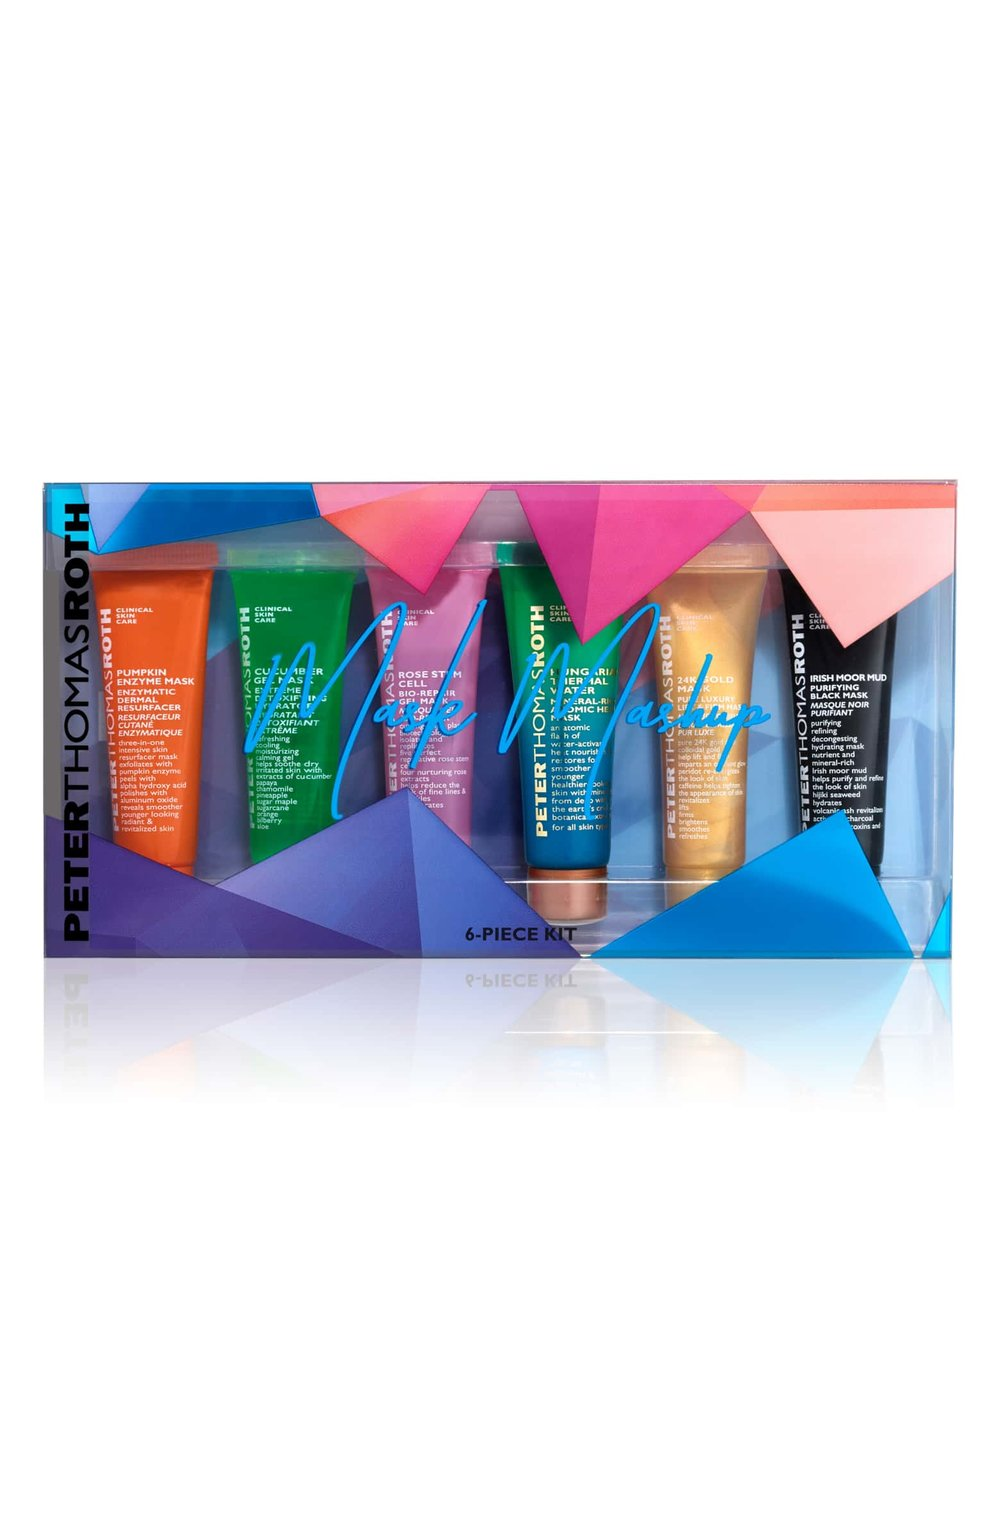 Peter Thomas Roth Mask Set - $25 on Nordstrom